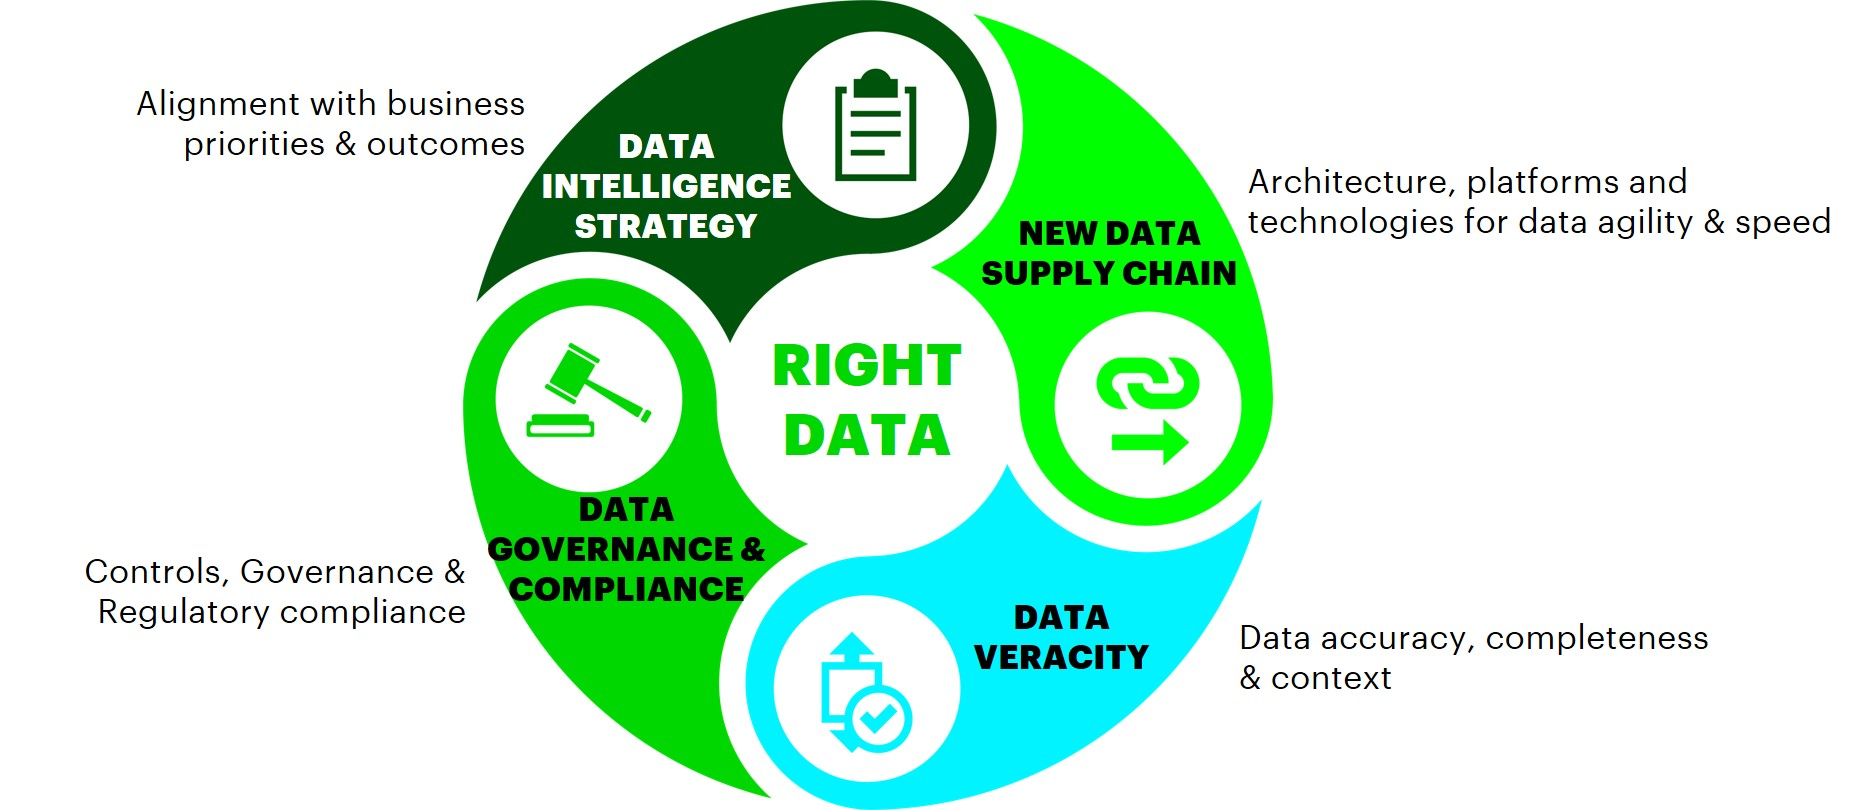 Informatica's platform-based data solutions integrates data intelligence strategy, new data supply chain, data governance and compliance and data veracity to build the right data.